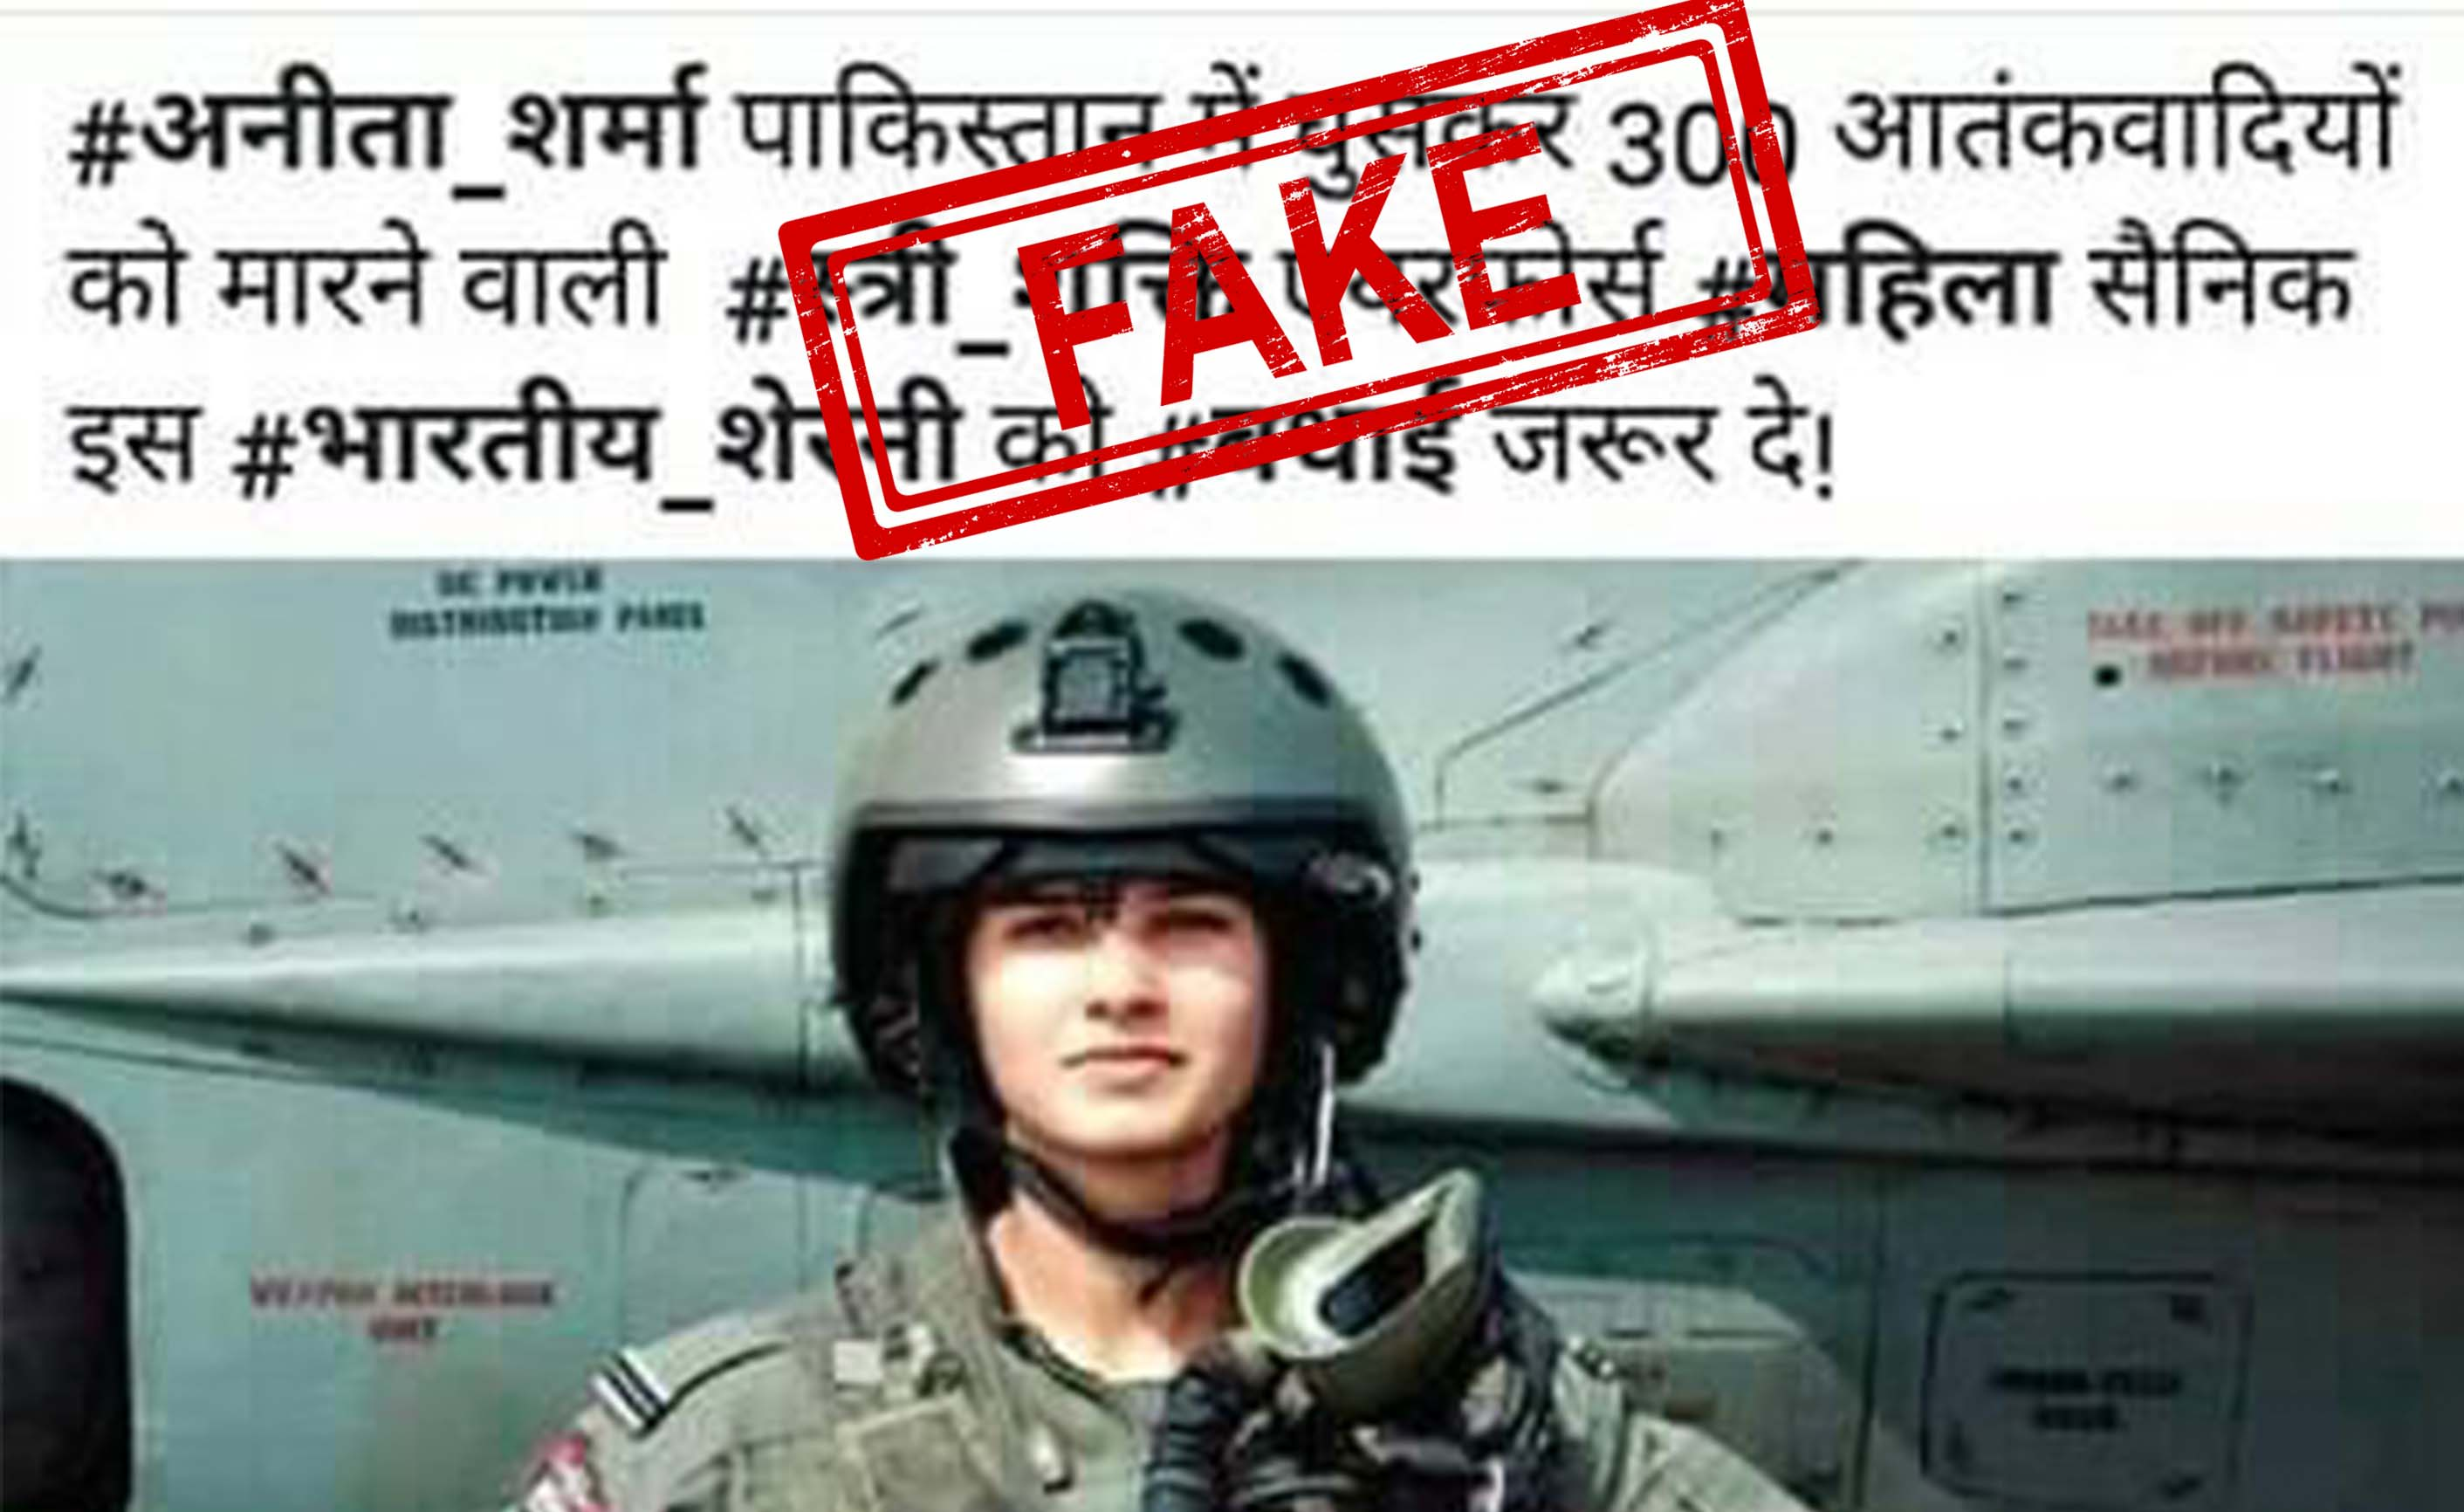 Indian Air Force, IAF, Pilot, 300, Terrorists, NewsMobile, Mobile, News, India, Fact Check, Fact Checker, Fake